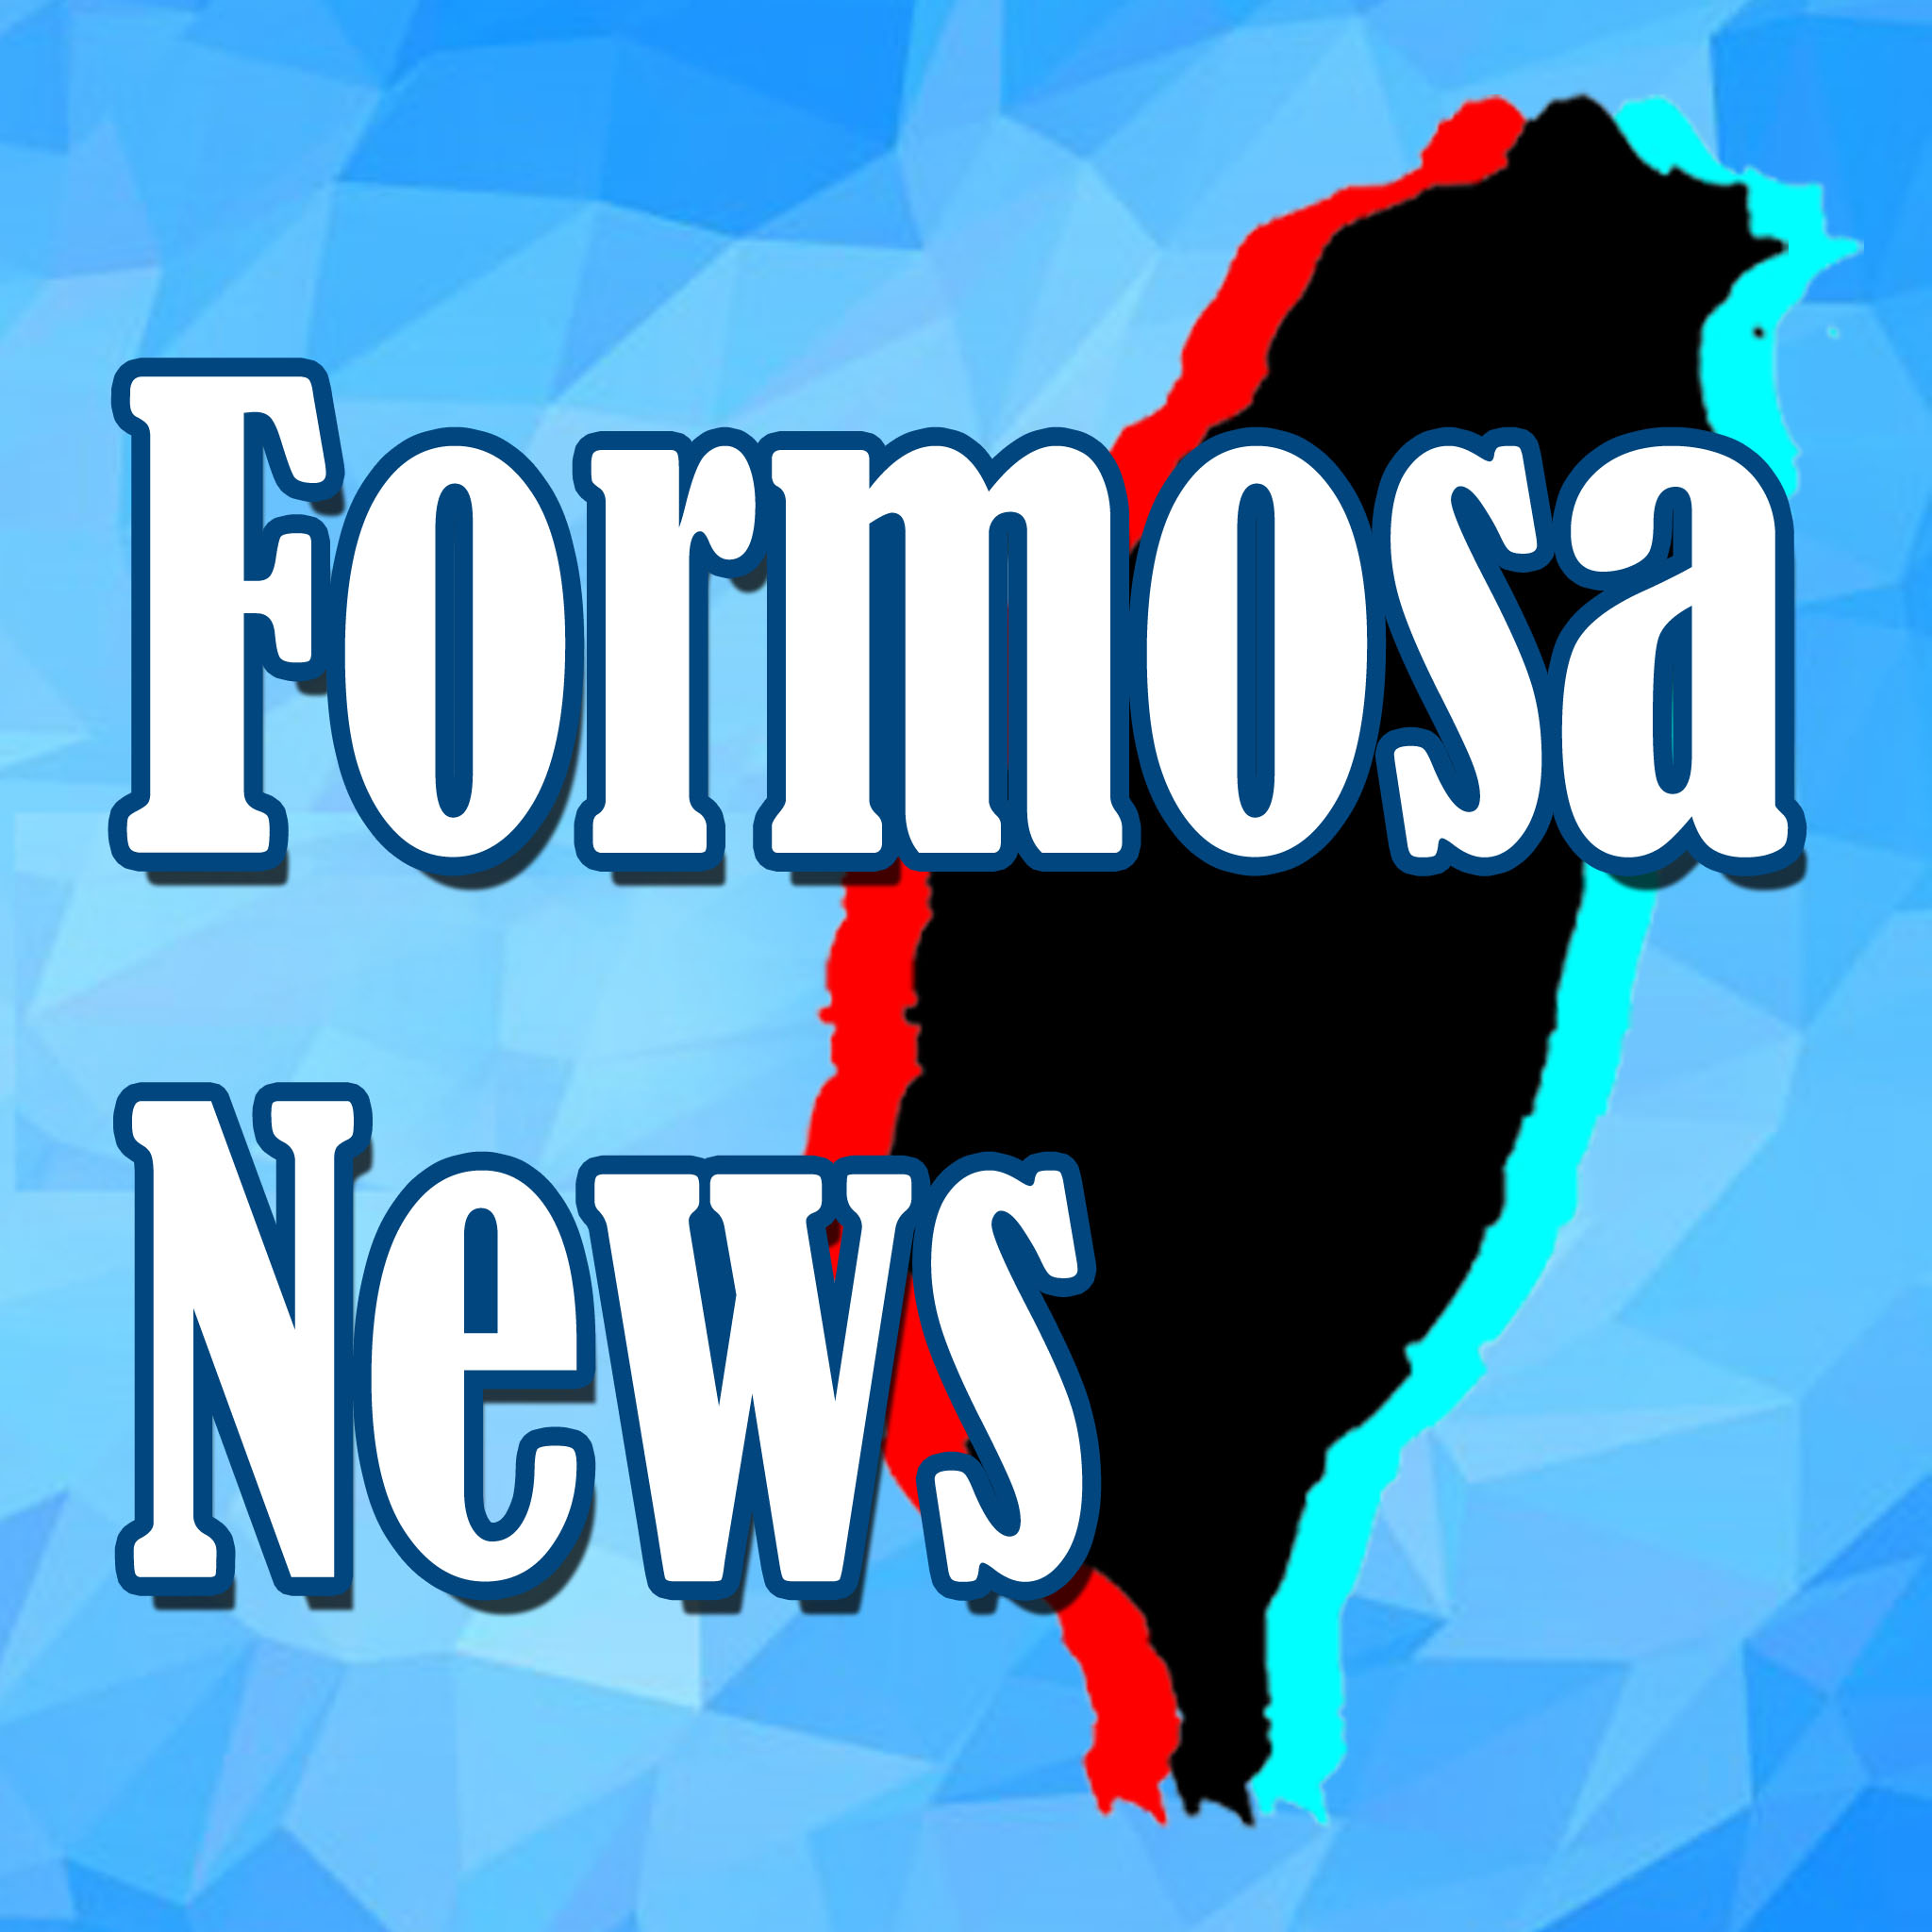 Apr 20, 2021 Formosa Headline News